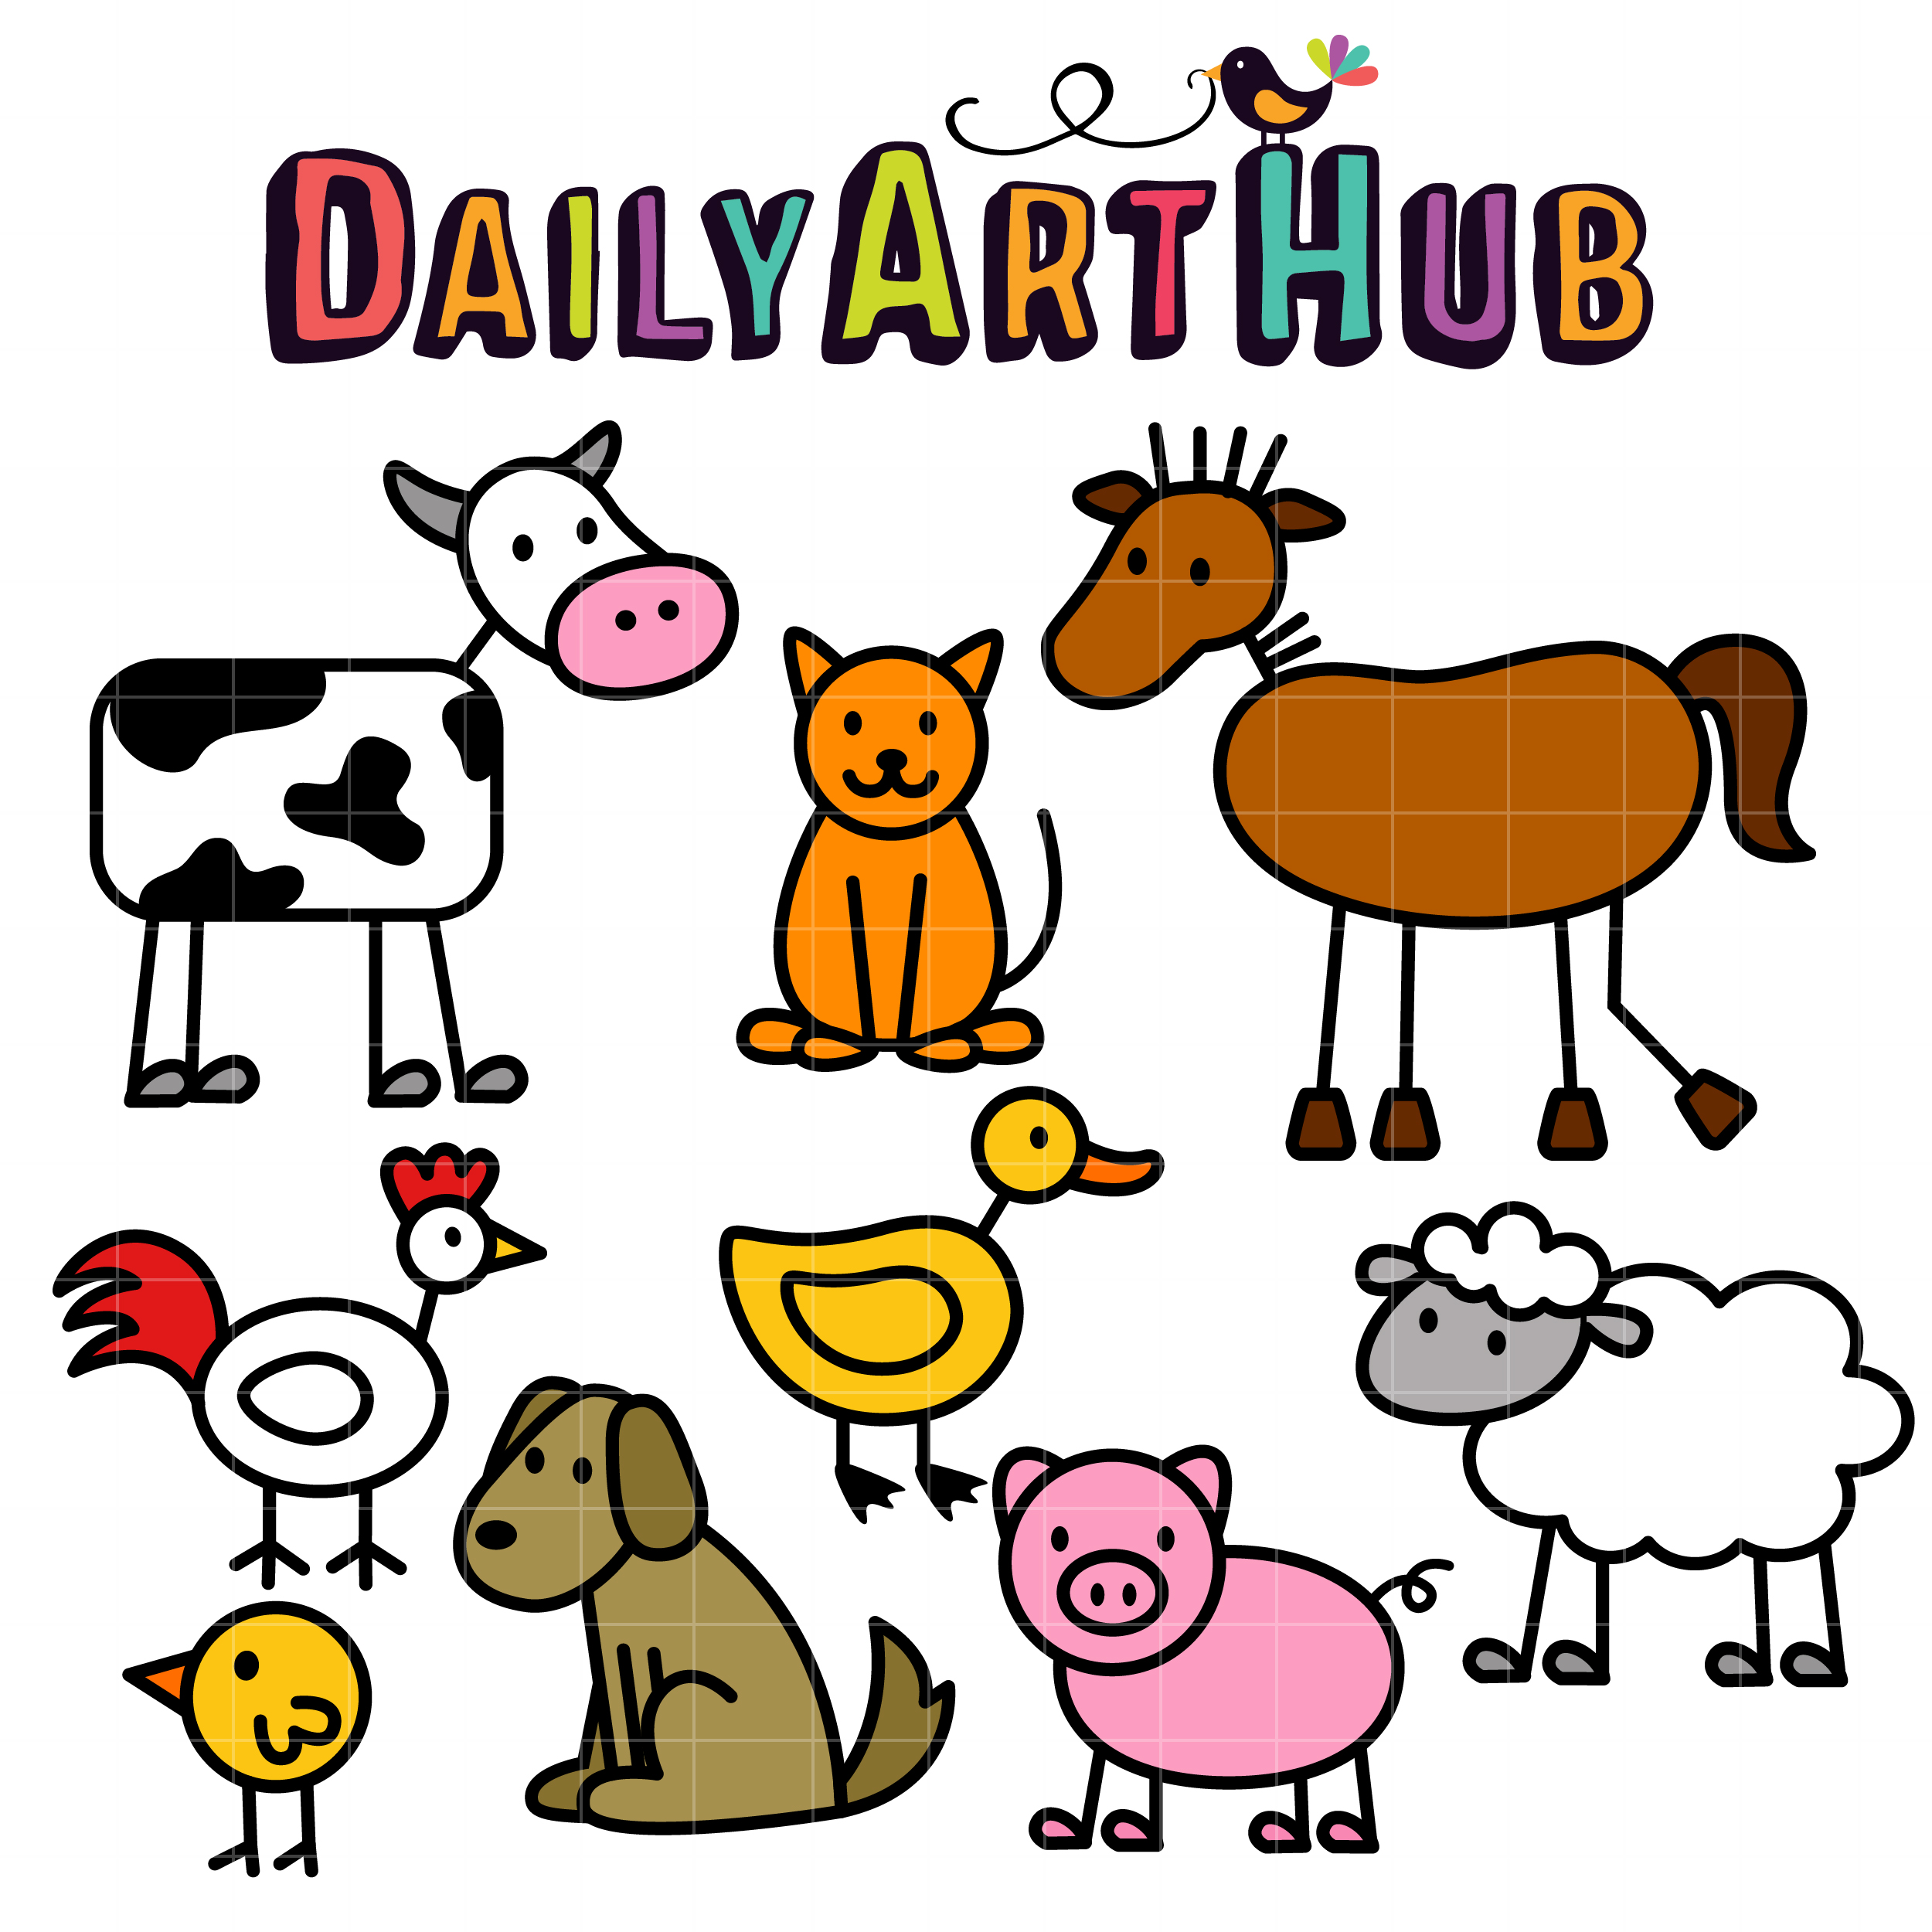 stick farm animals clip art set daily art hub free clip art everyday rh dailyarthub com free clipart farm animals free clipart cartoon farm animals